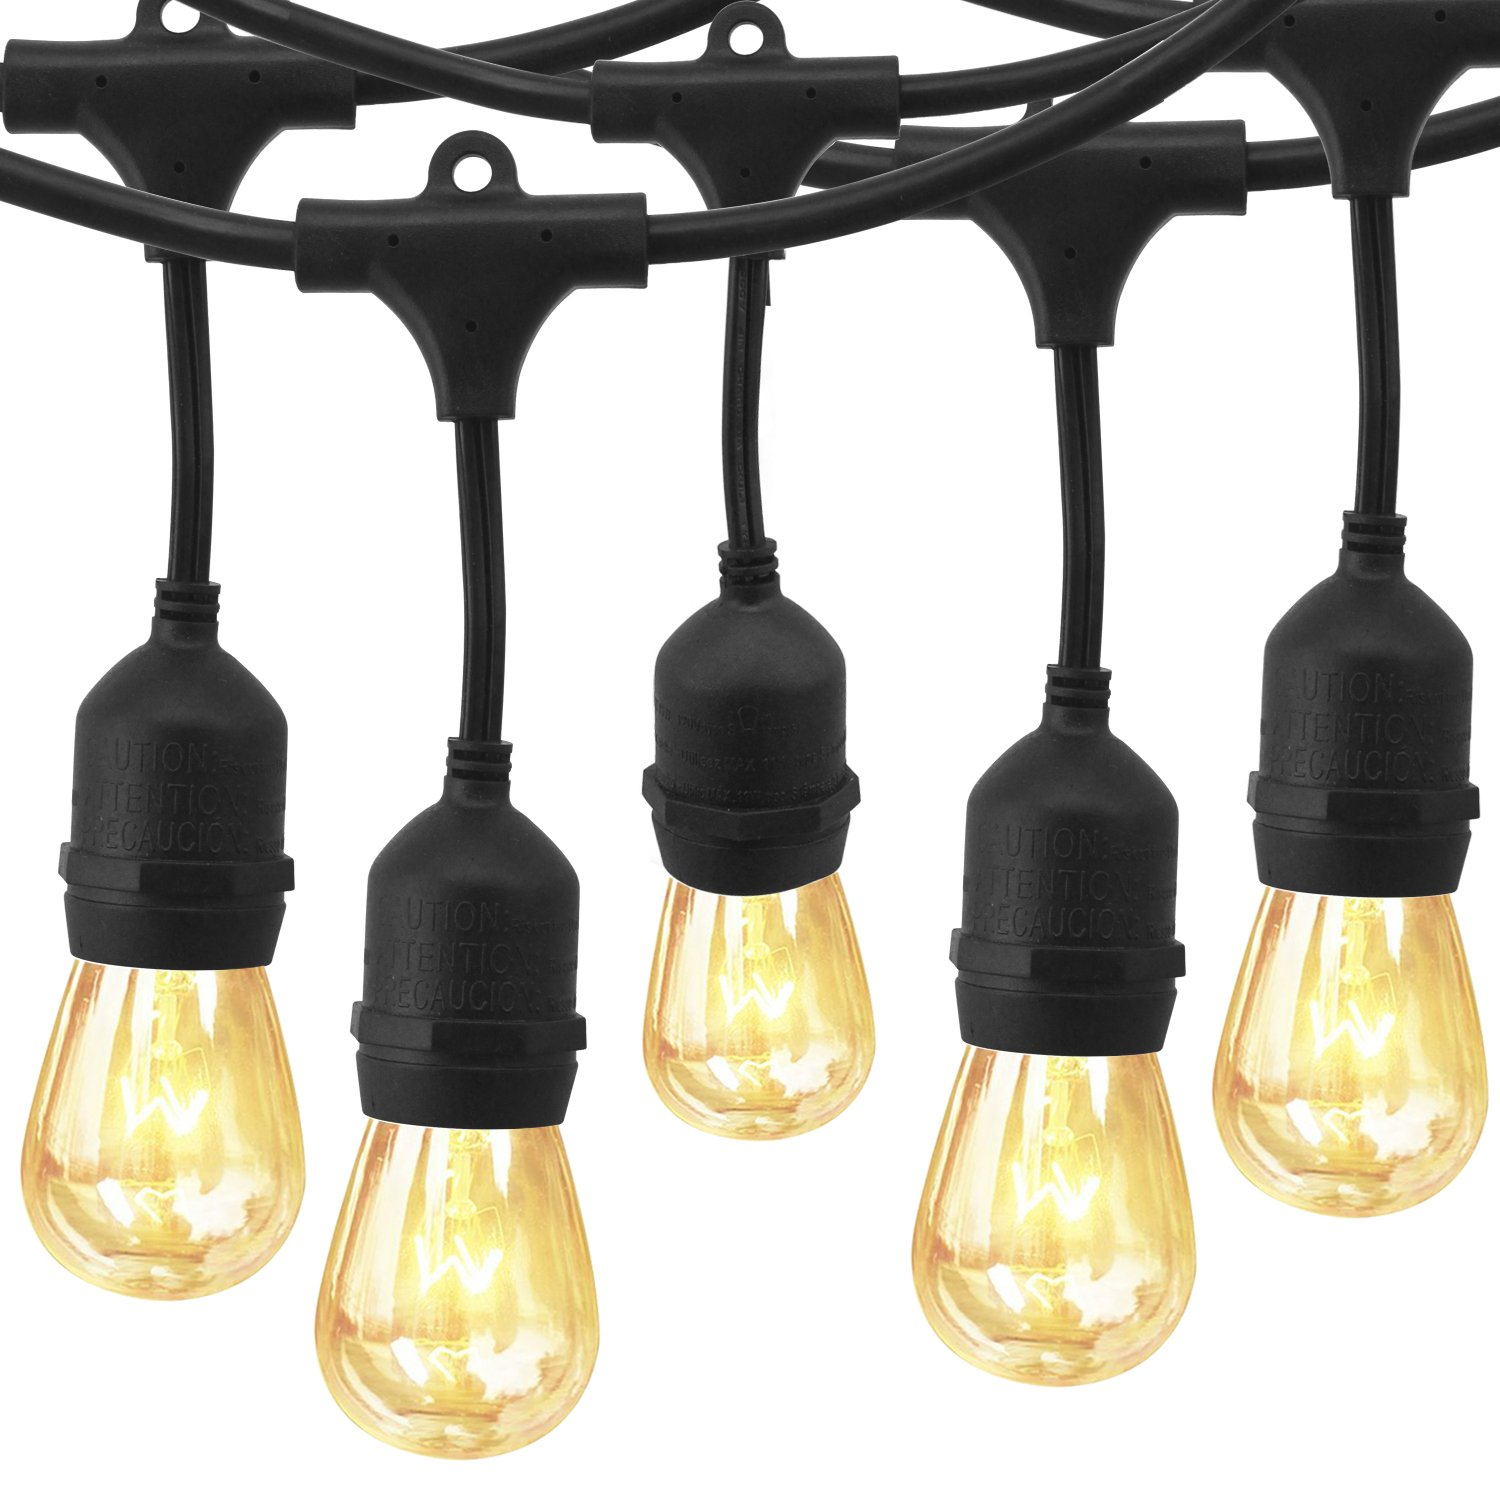 48 Ft Outdoor String Lights ,EAGWELL Weatherproof Commercial String Lights with S14 Incandescent Bulbs, UL Certification Backyard Lights for Garden Bistro Cafe Pergola Gazebo Party